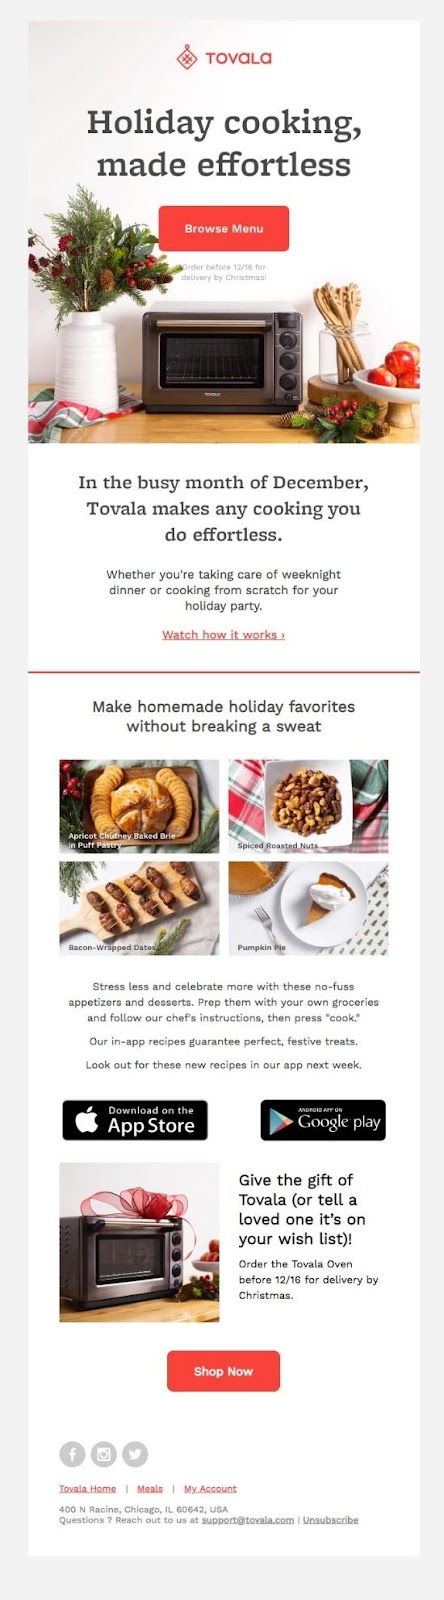 Tovala focuses their holiday email marketing on providing their readers with valuable content, not focusing in on sales